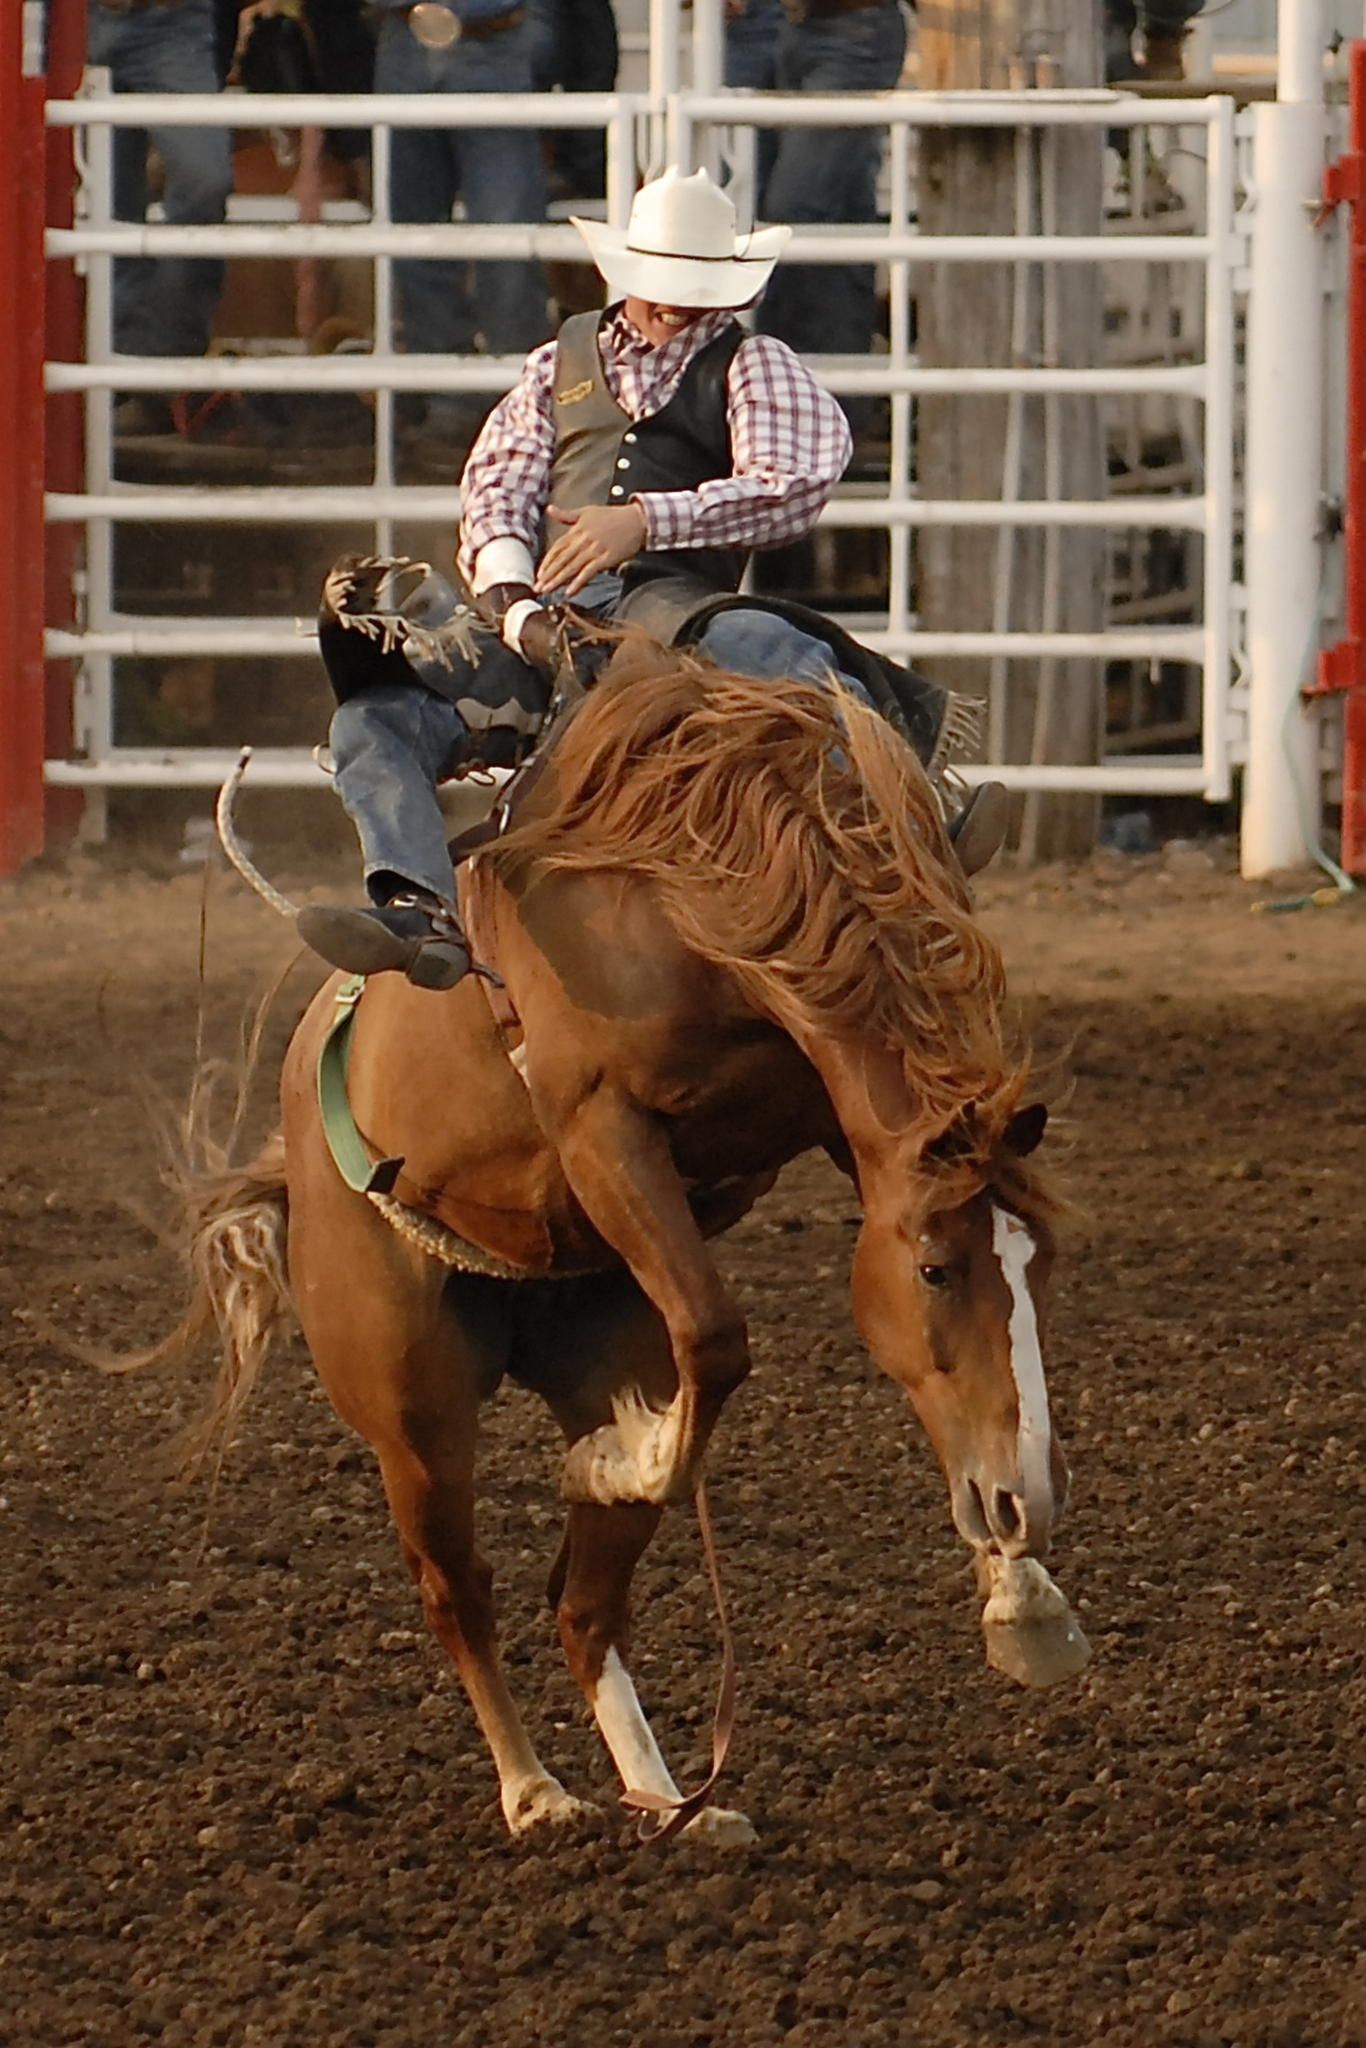 Bronc rider at the St. Paul Rodeo in St. Paul Oregon USA hanging on for the full 8 seconds.